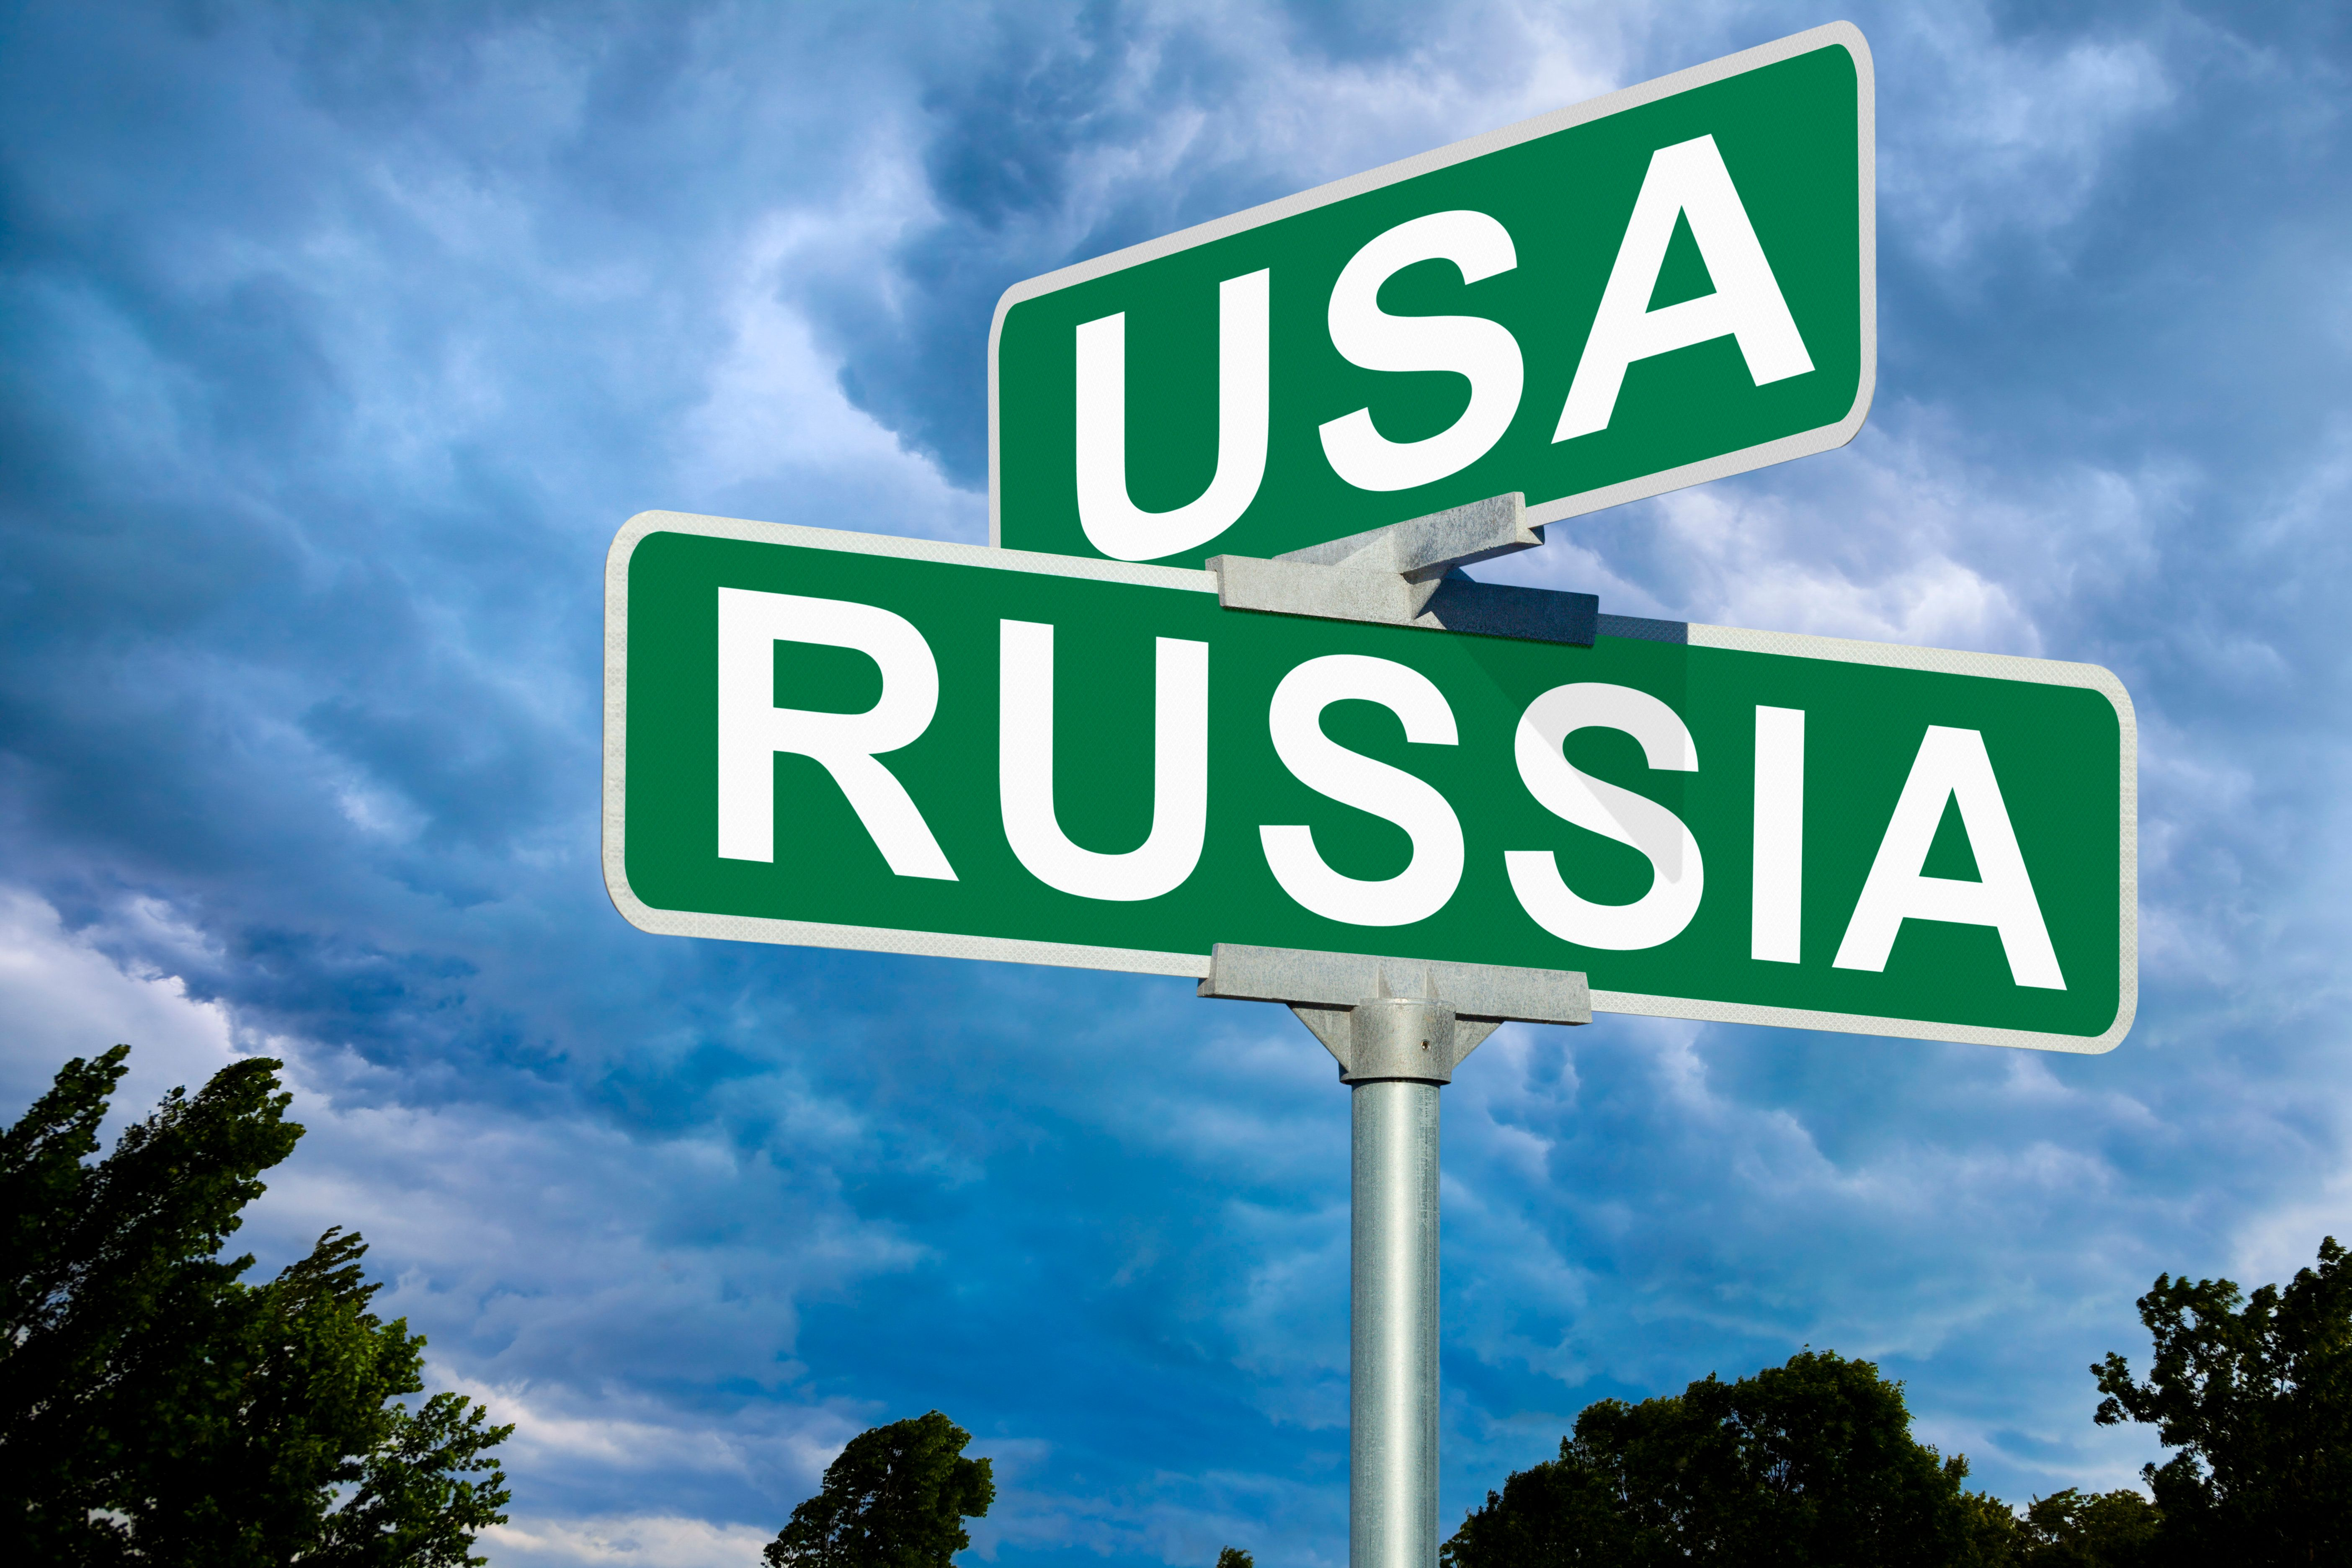 USA VS Russia Street Sign.  This image is useful when addressing the long running conflict, partnership, friendship, comparison, and rivalry between these two powerful countries.